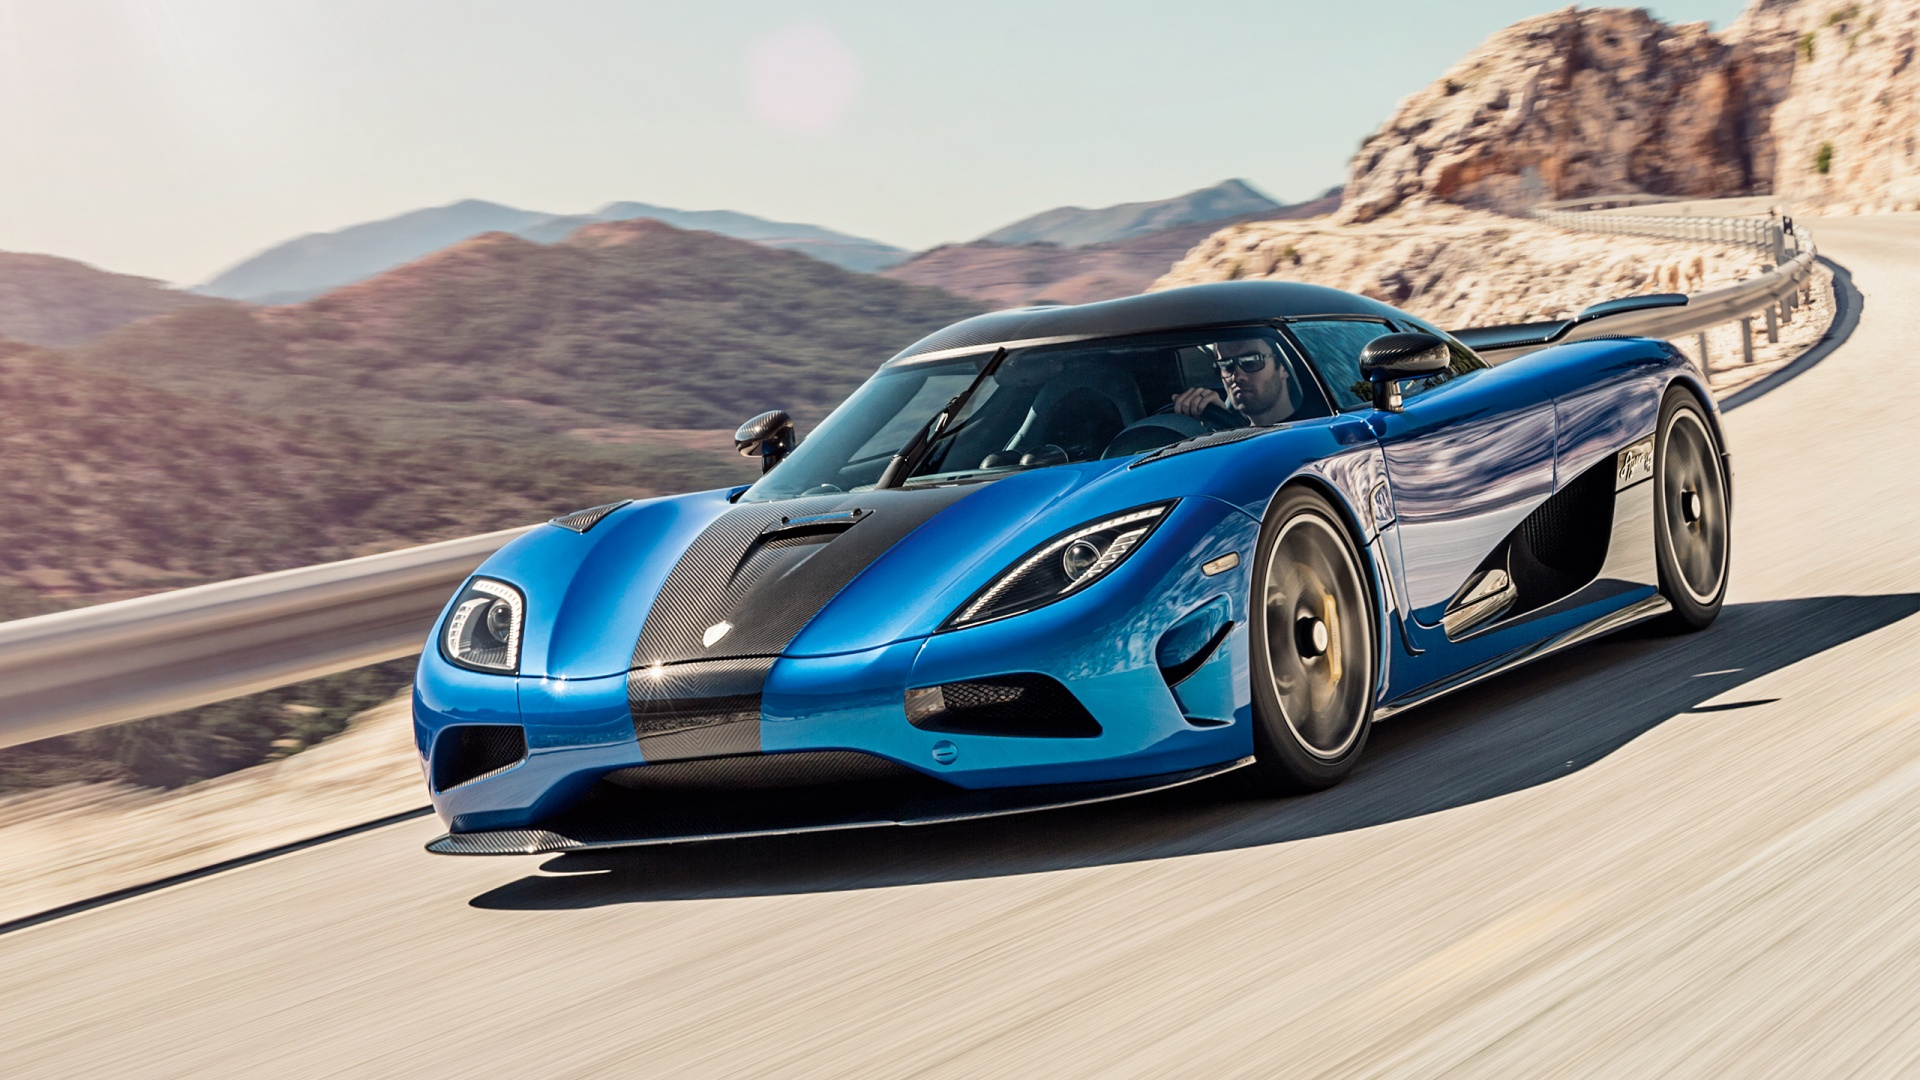 2015 Koenigsegg Agera HH Wallpaper HD Car Wallpapers 1920x1080